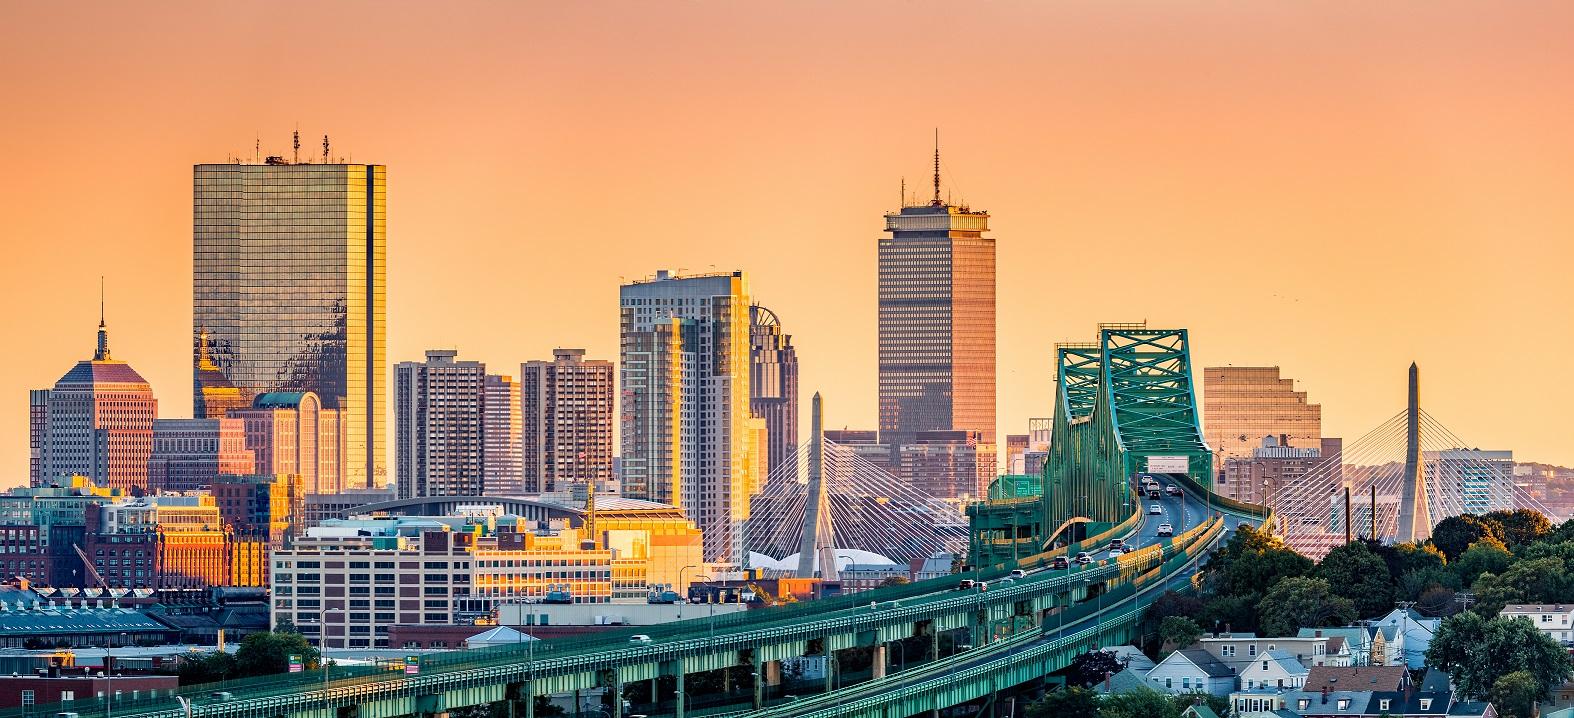 Real Estate Startup Nexme Launches Services in Booming Boston Residential Real Estate Market